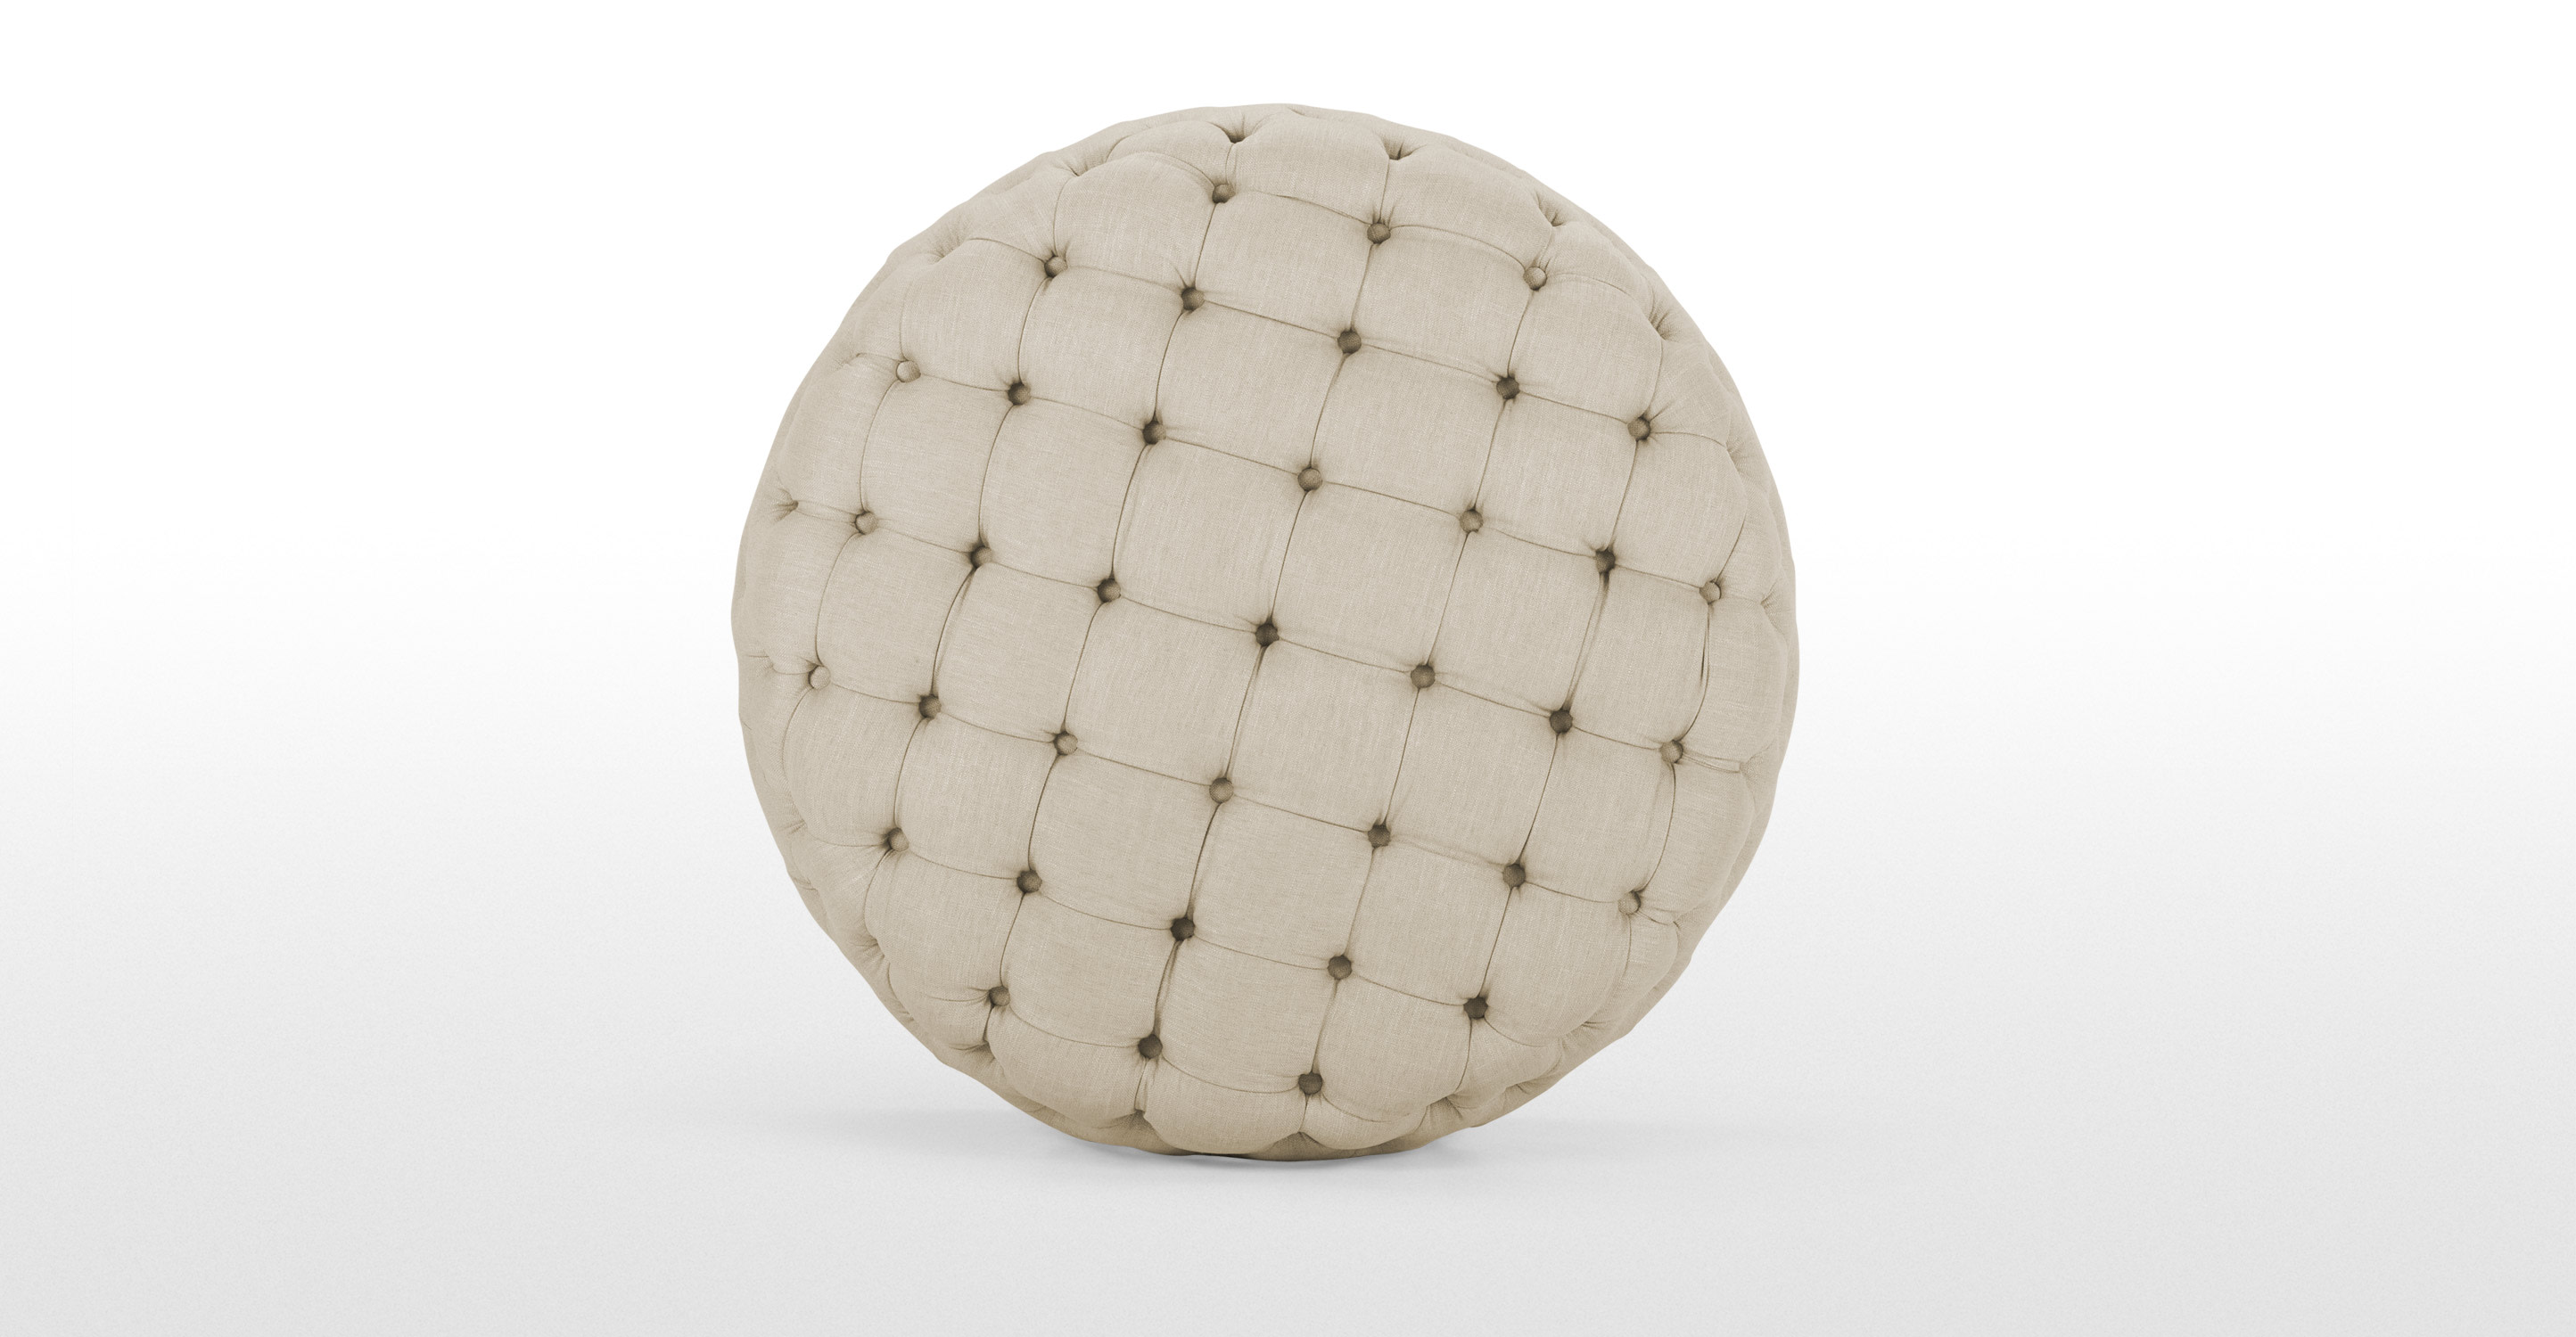 Blakes Large Round Ottoman In Biscuit Beige